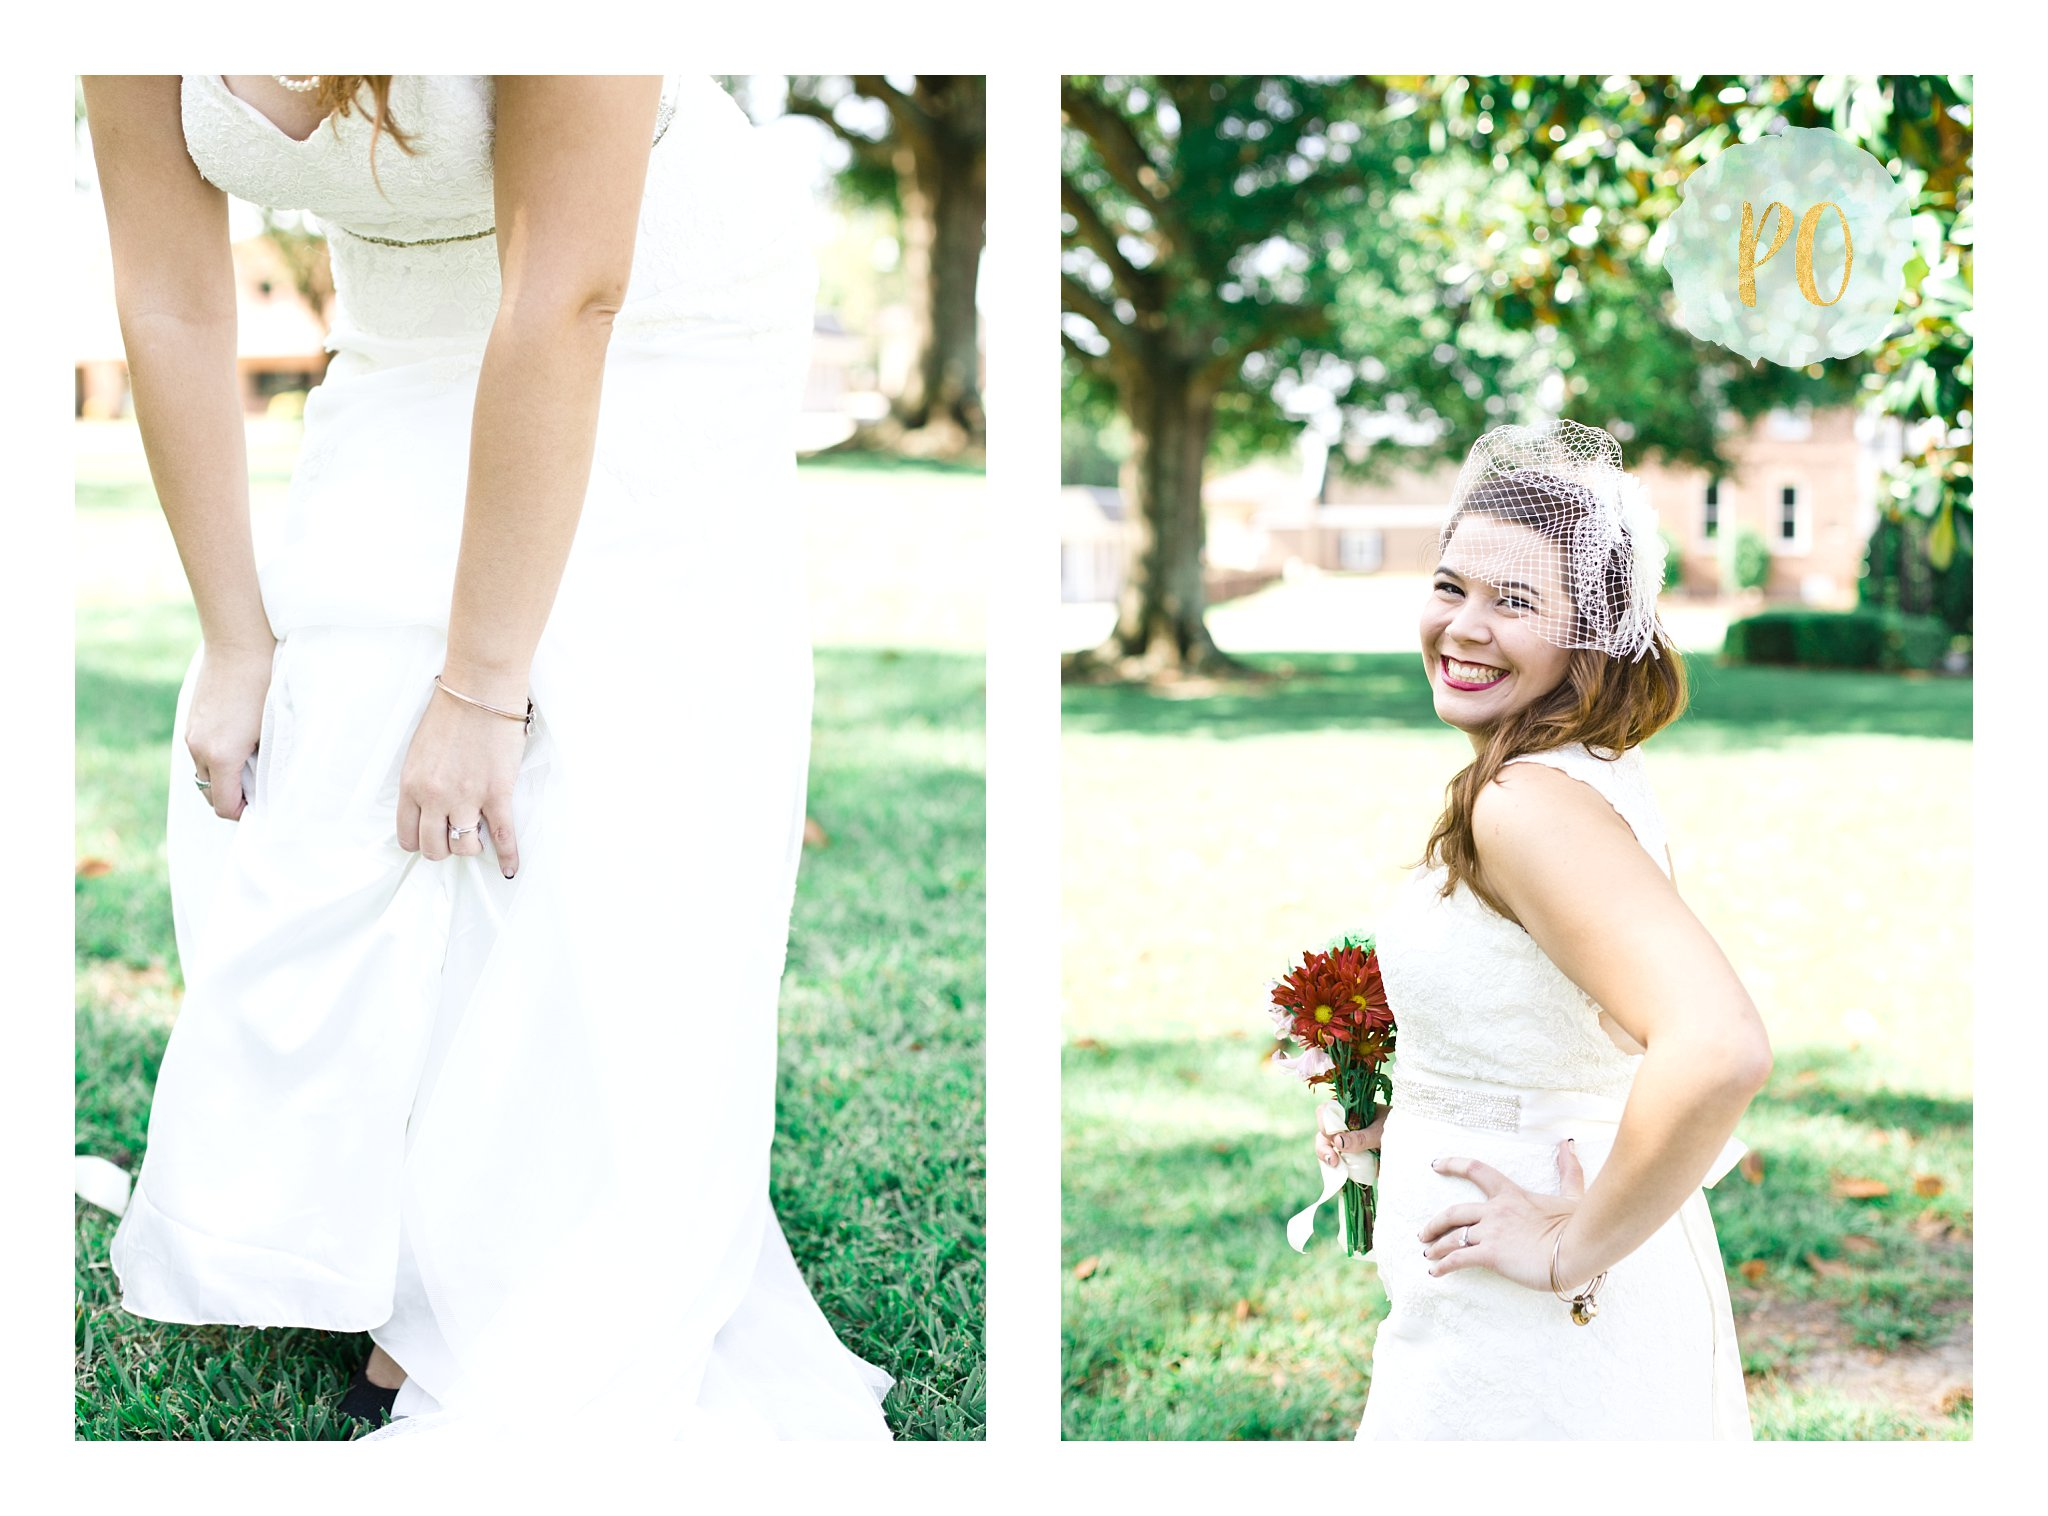 cypress-inn-lowcountry-bridal-session-conway-sc-photos_0148.jpg